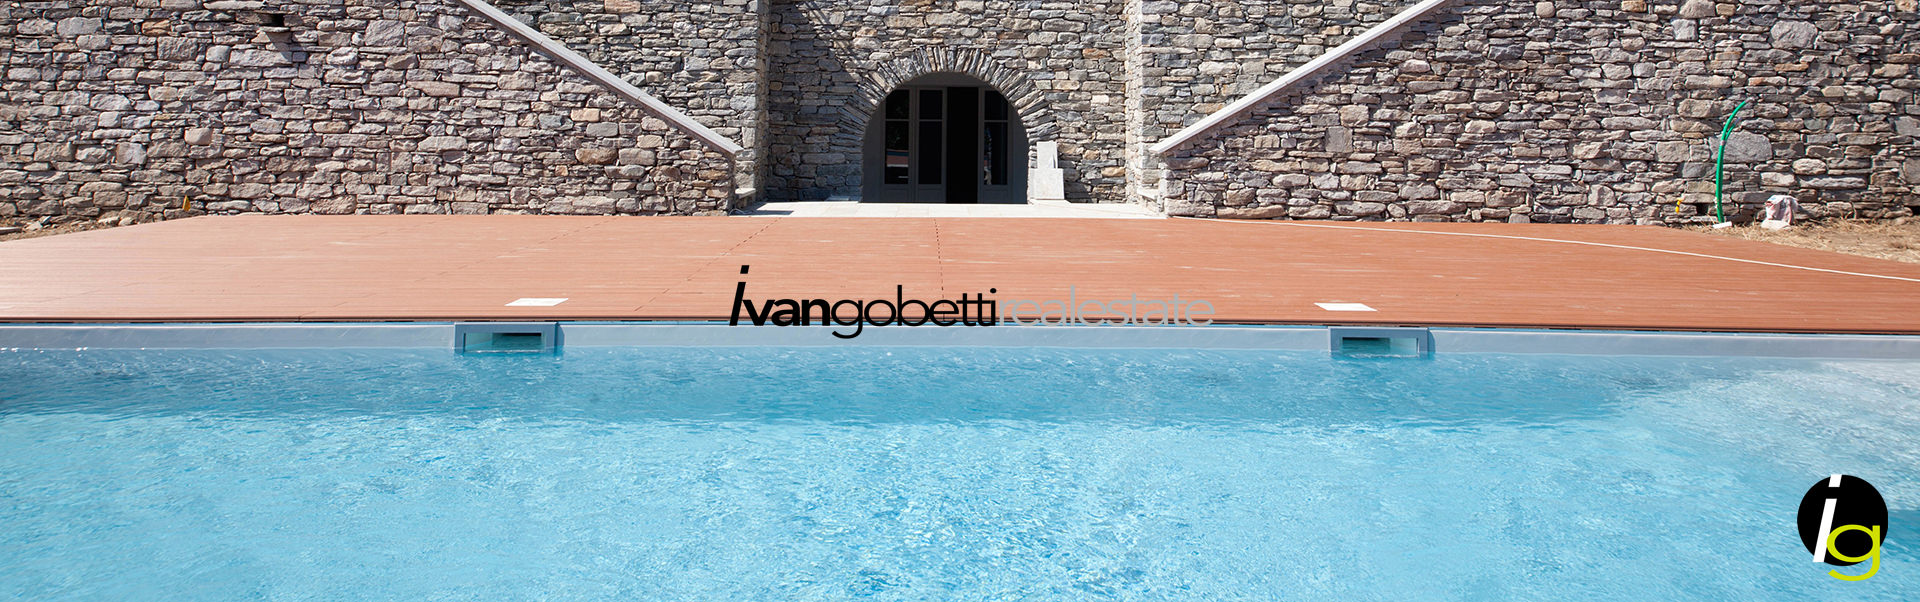 Luxurious newly built villas for sale in Italy, Lake Maggiore, Verbania